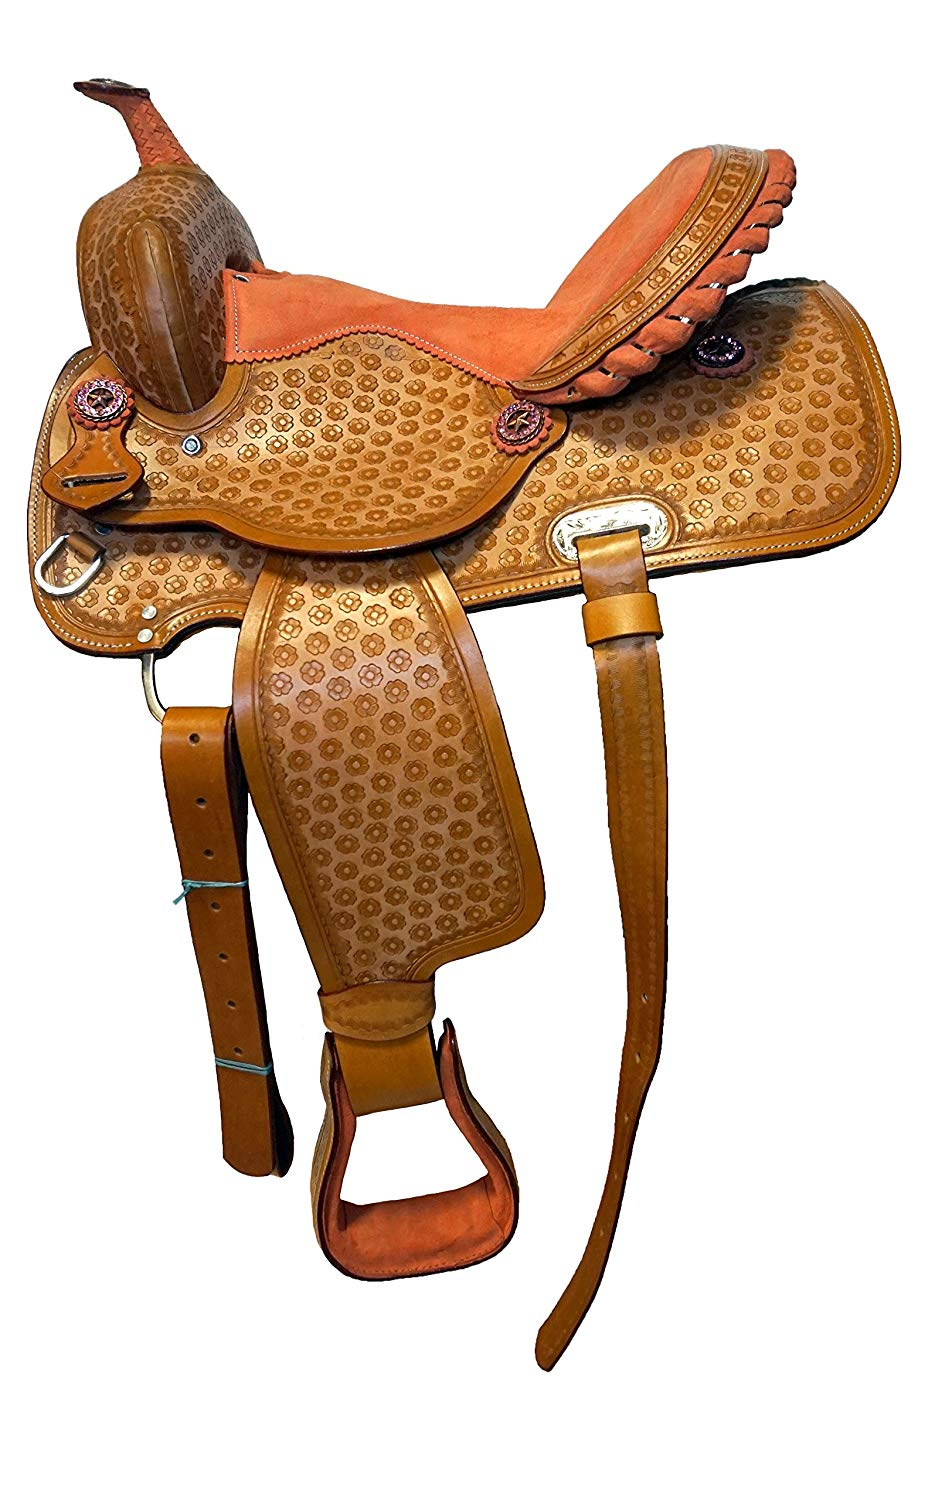 "Equitem 15.5"" Light Floral Tooled Leather Saddle with Peach Orange Suede Seat"